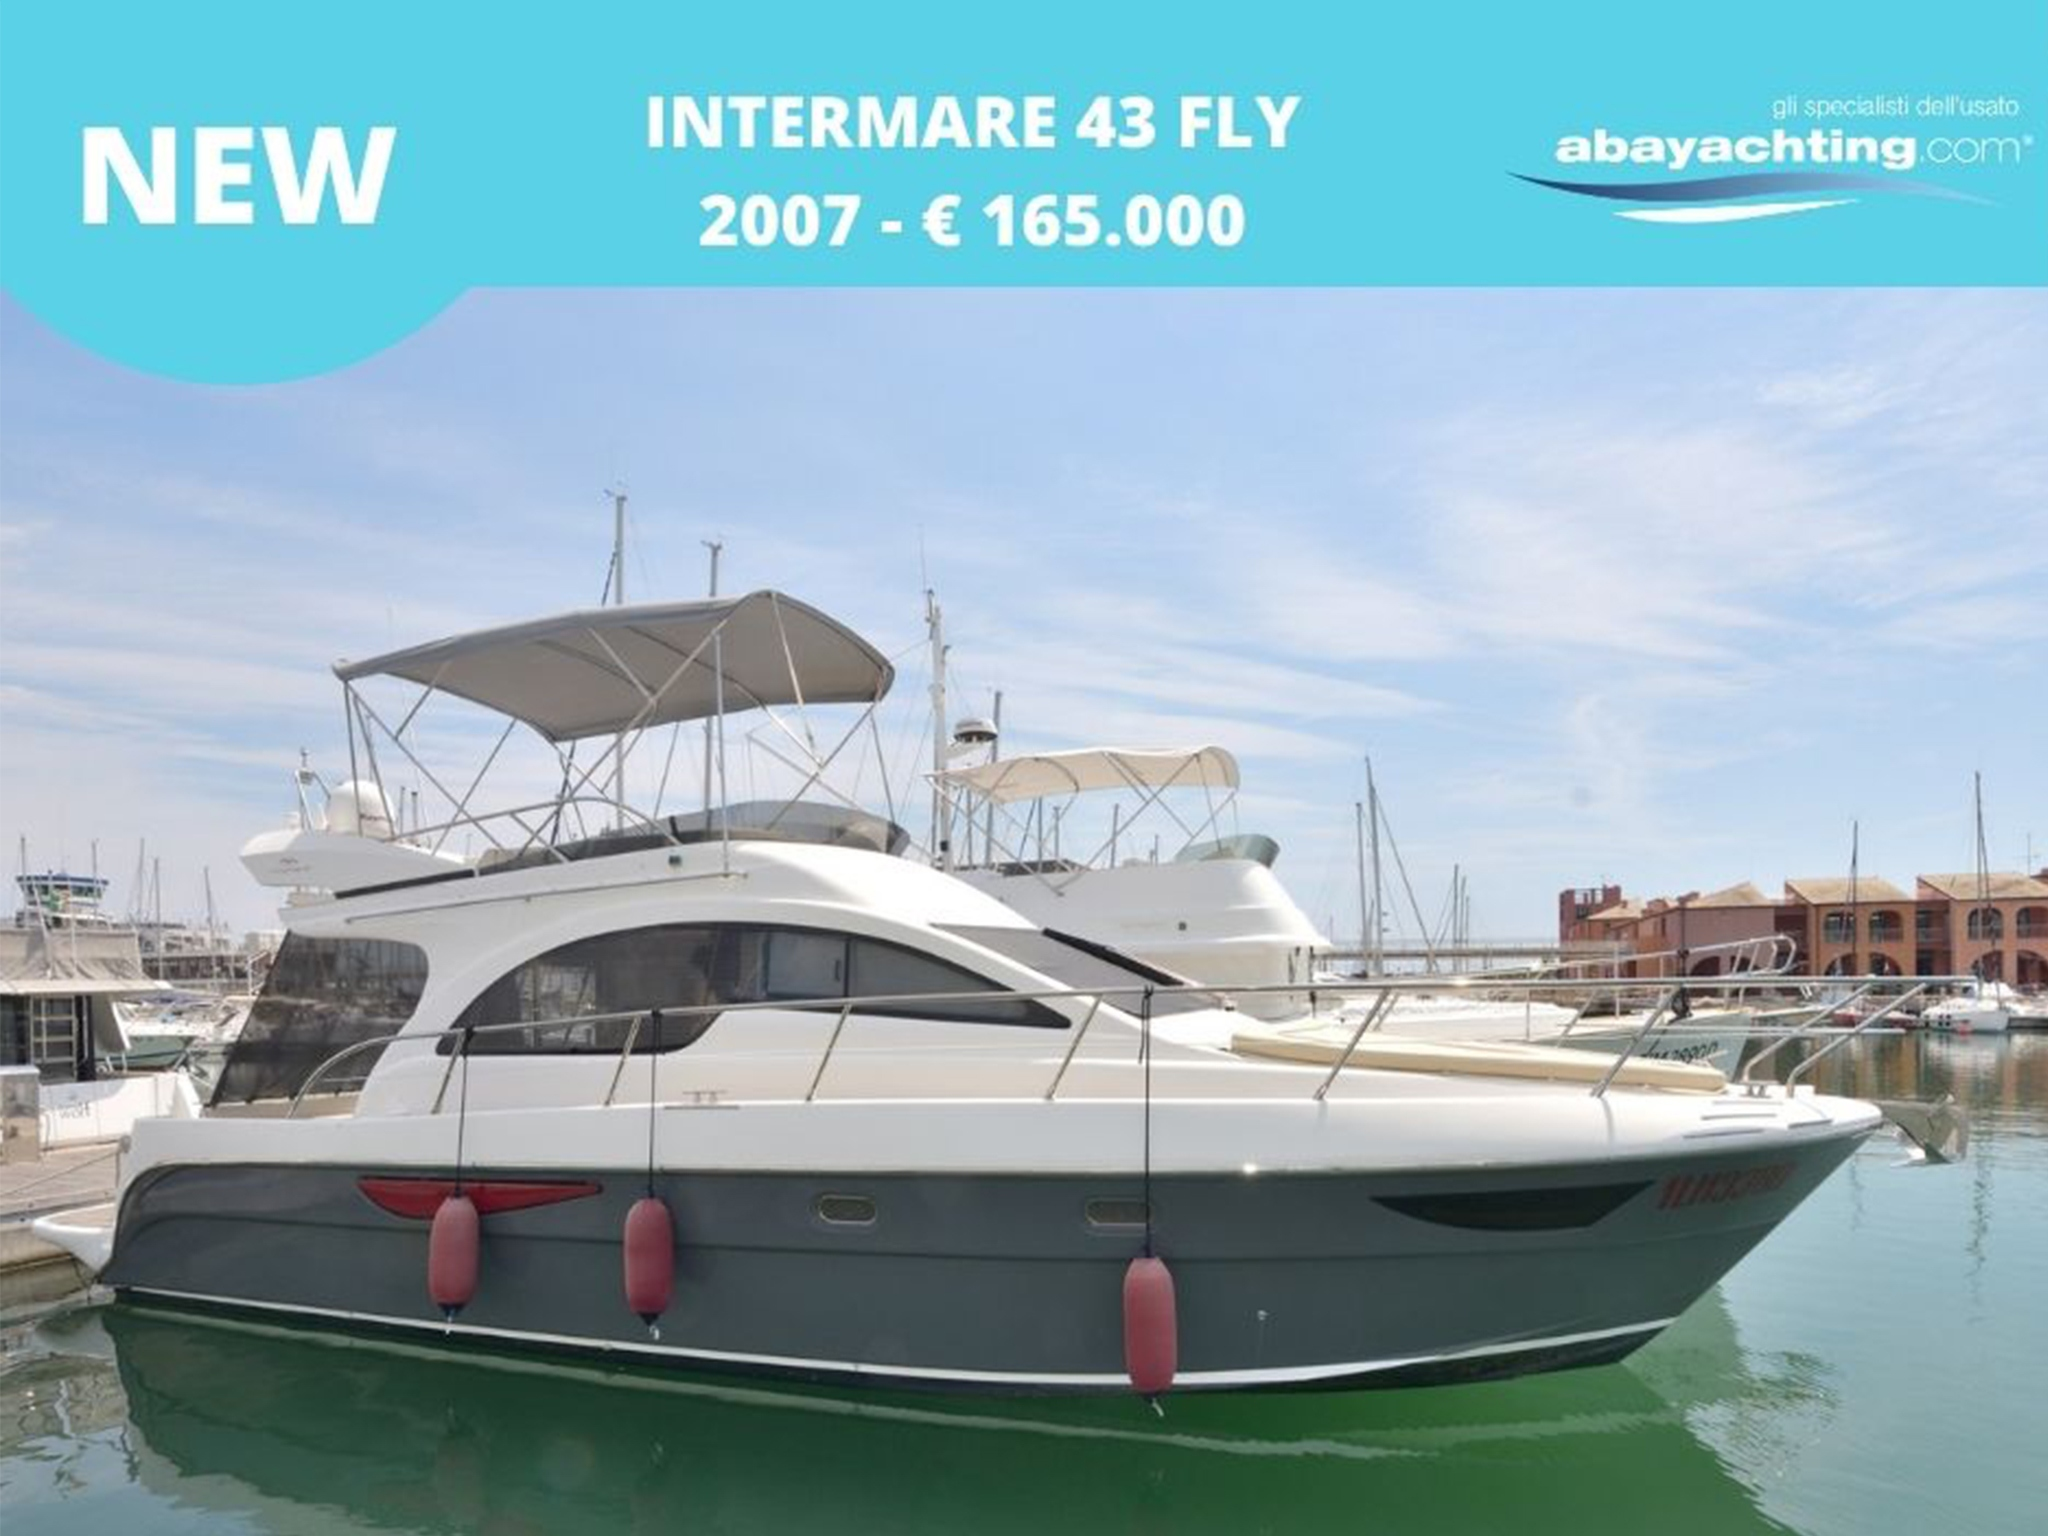 New arrival Intermare 43 Fly